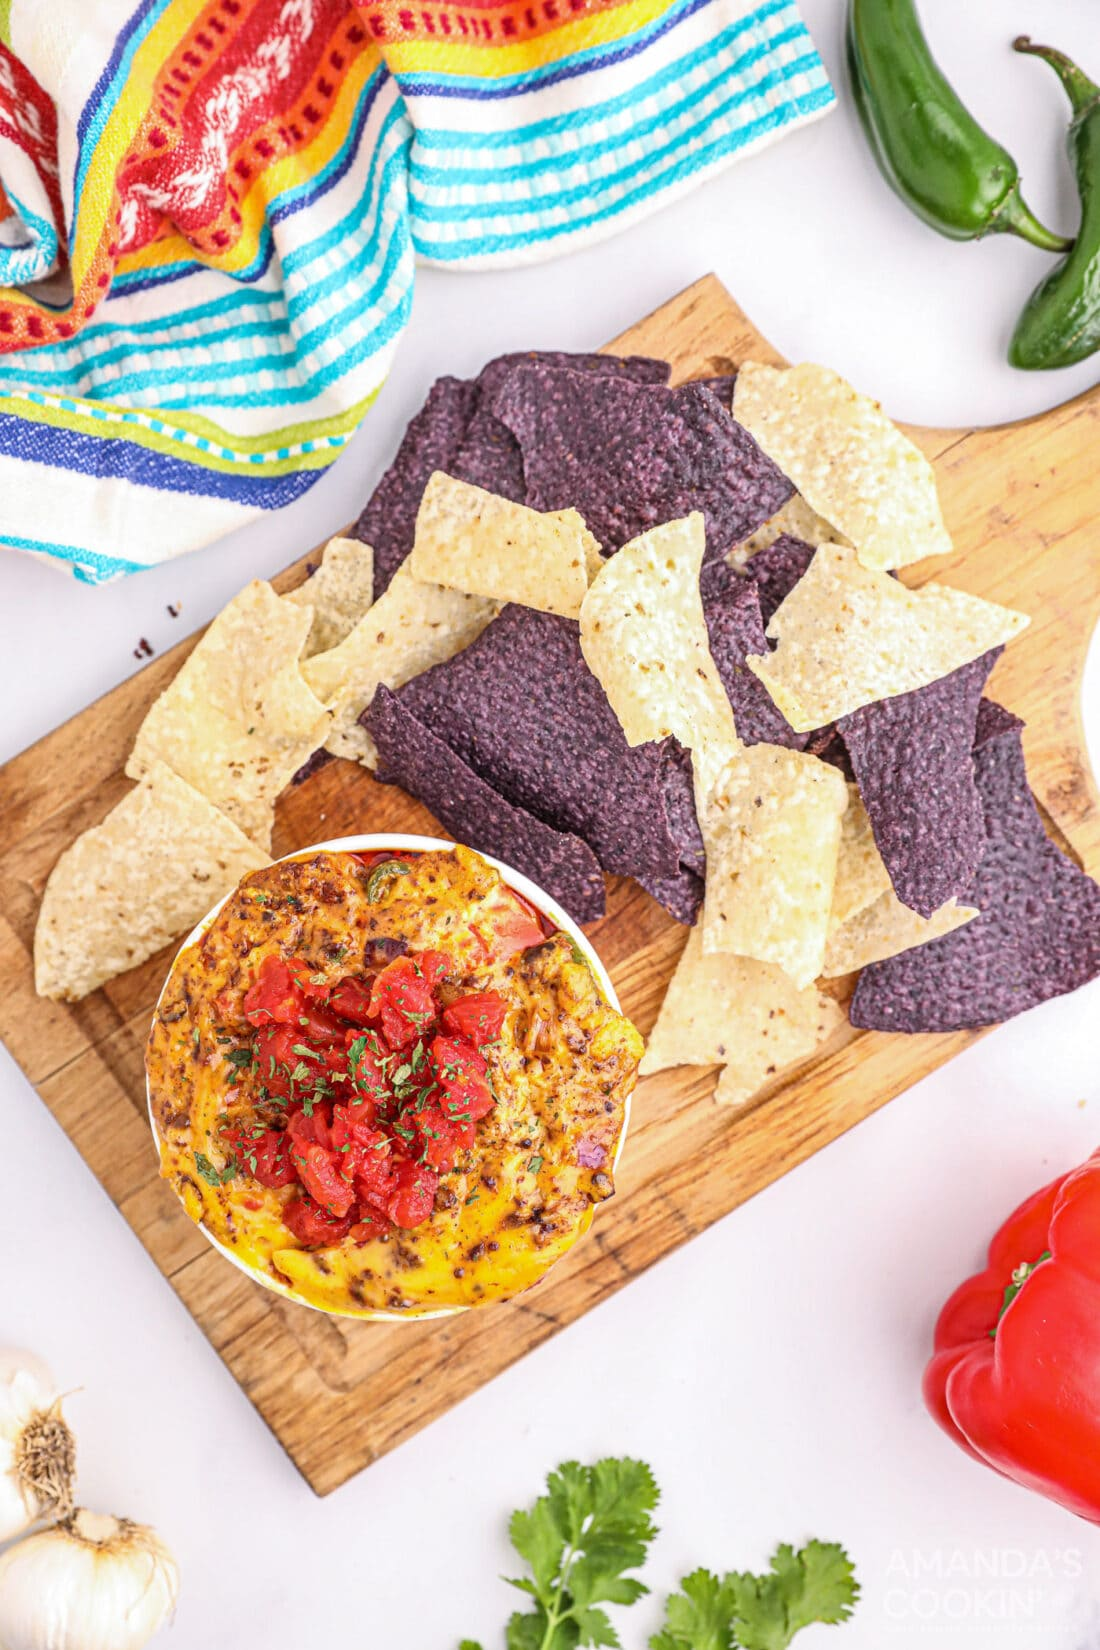 Smoked Queso Dip in bowl with chips